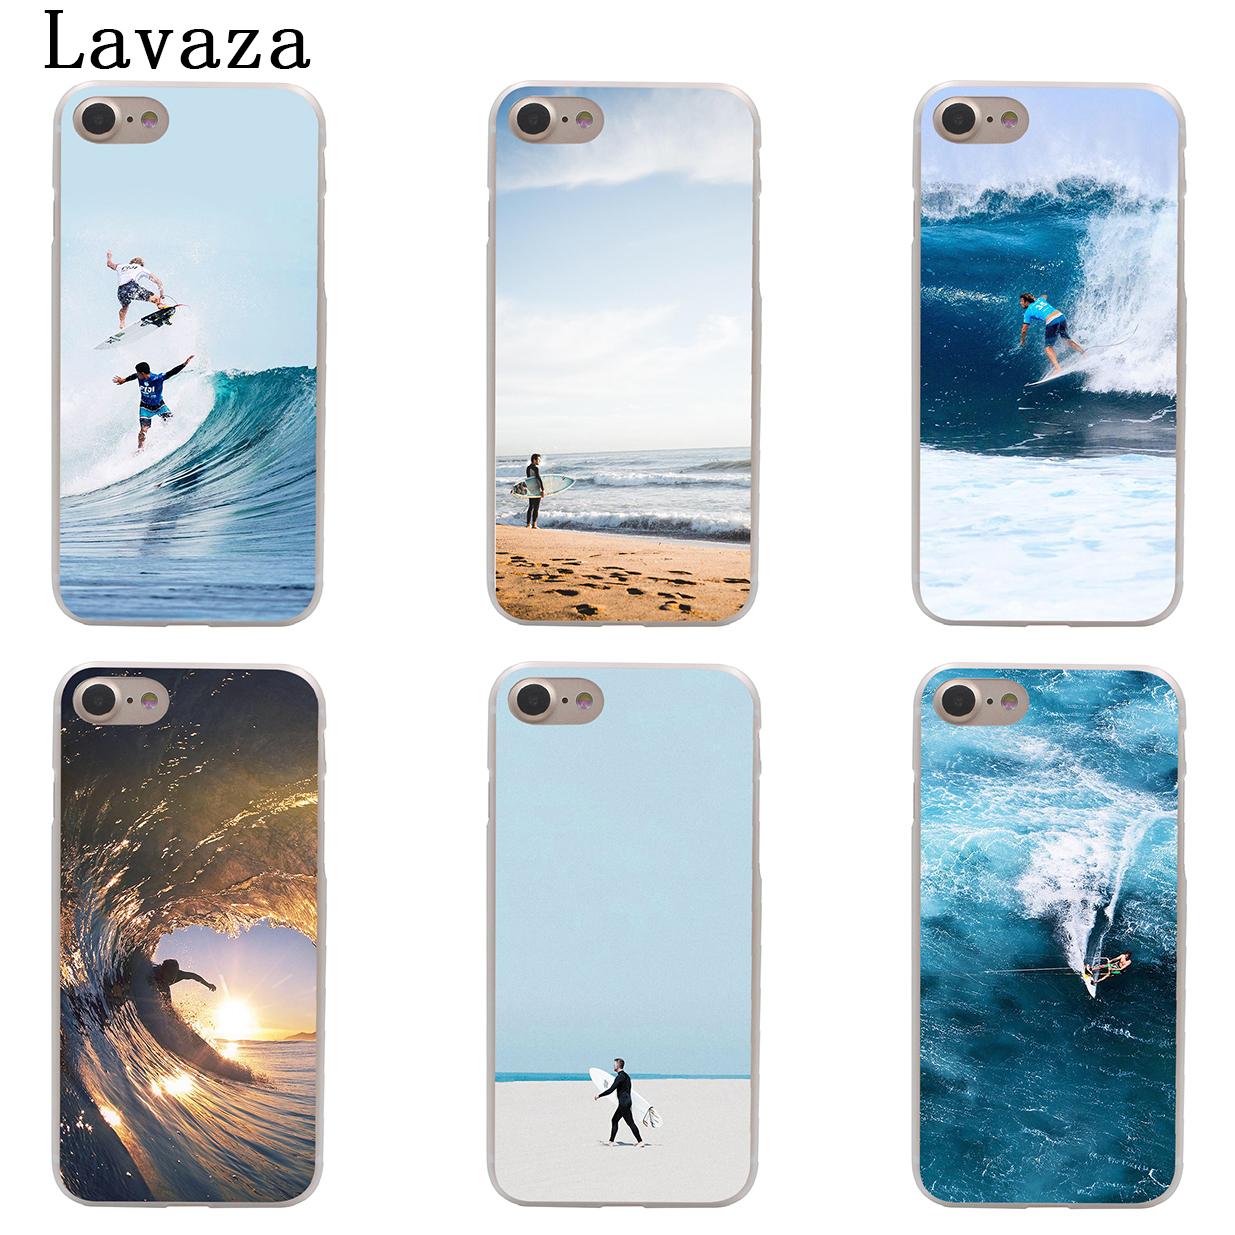 Maiyaca Wave Ocean Surfing Case For Iphone 6 6s Fundas Case Black Rubber Back Cover Coque For Iphone 6 6s Soft Tpu Shell With A Long Standing Reputation Phone Bags & Cases